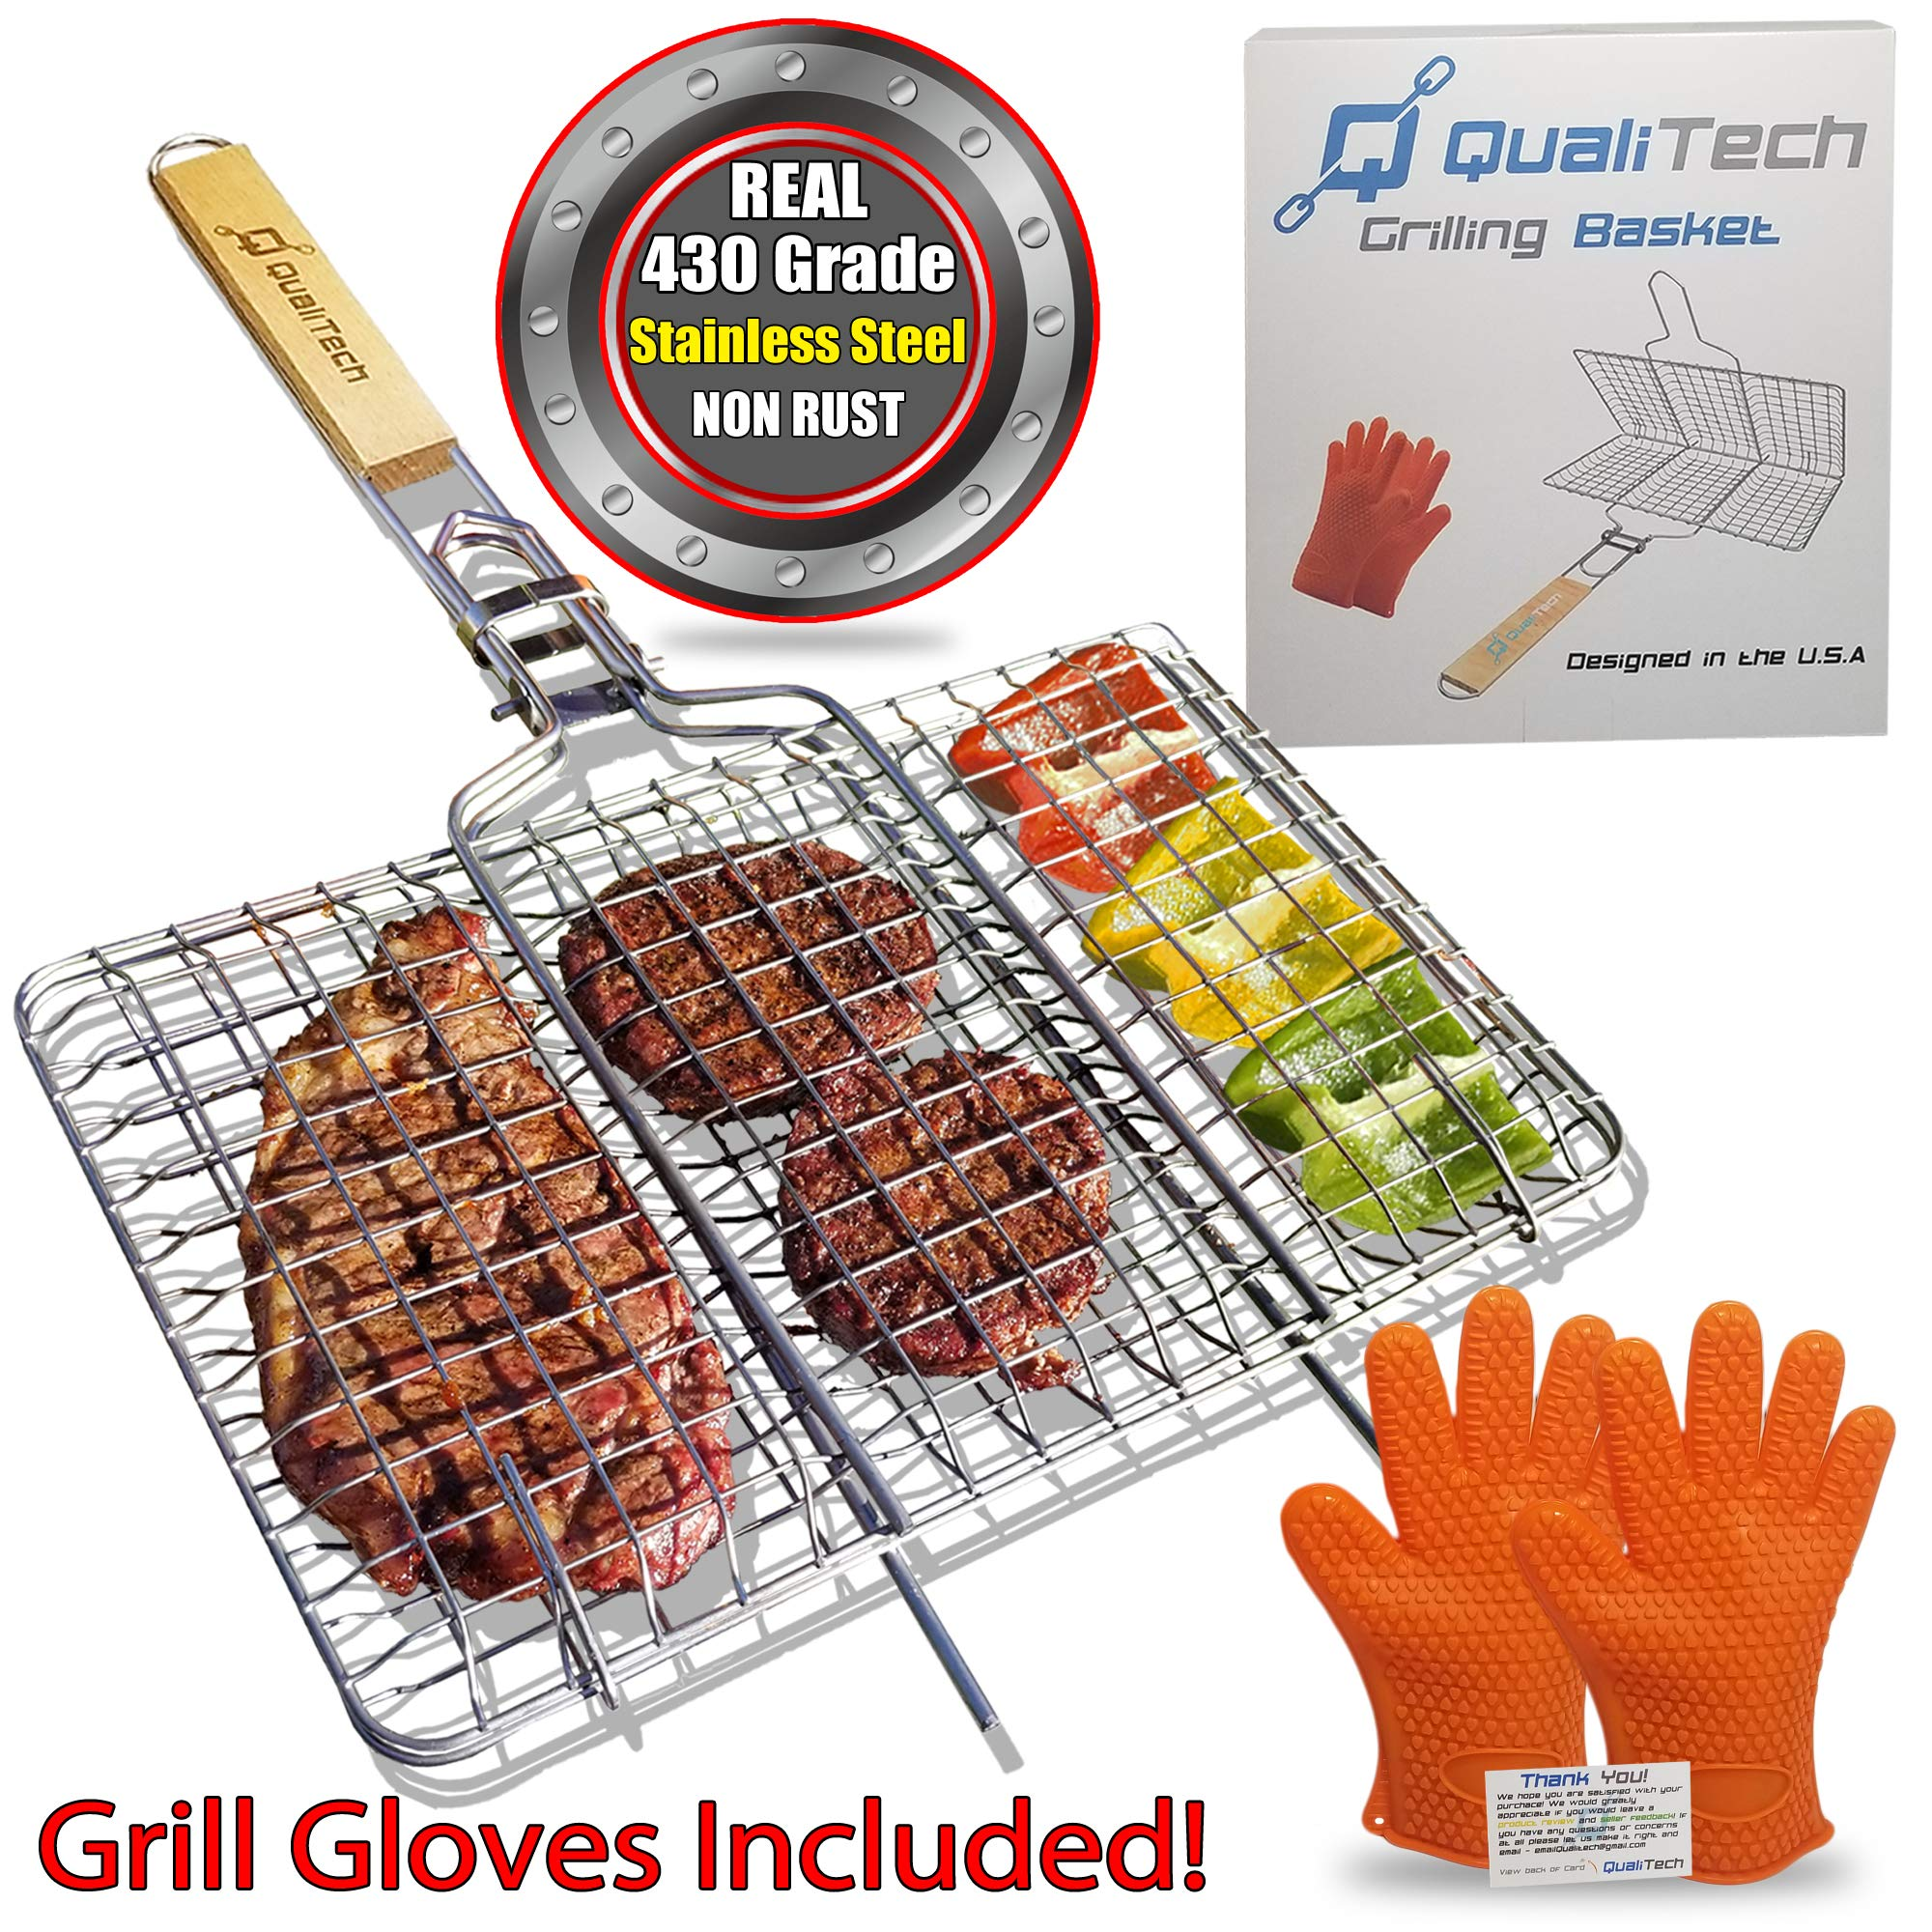 Qualitech 430 Stainless Steel Non Stick Folding BBQ Barbecue Portable Grill Grilling Basket with Removable Handle and Gloves Perfect for Fish Steak Meat Vegetables by Qualitech